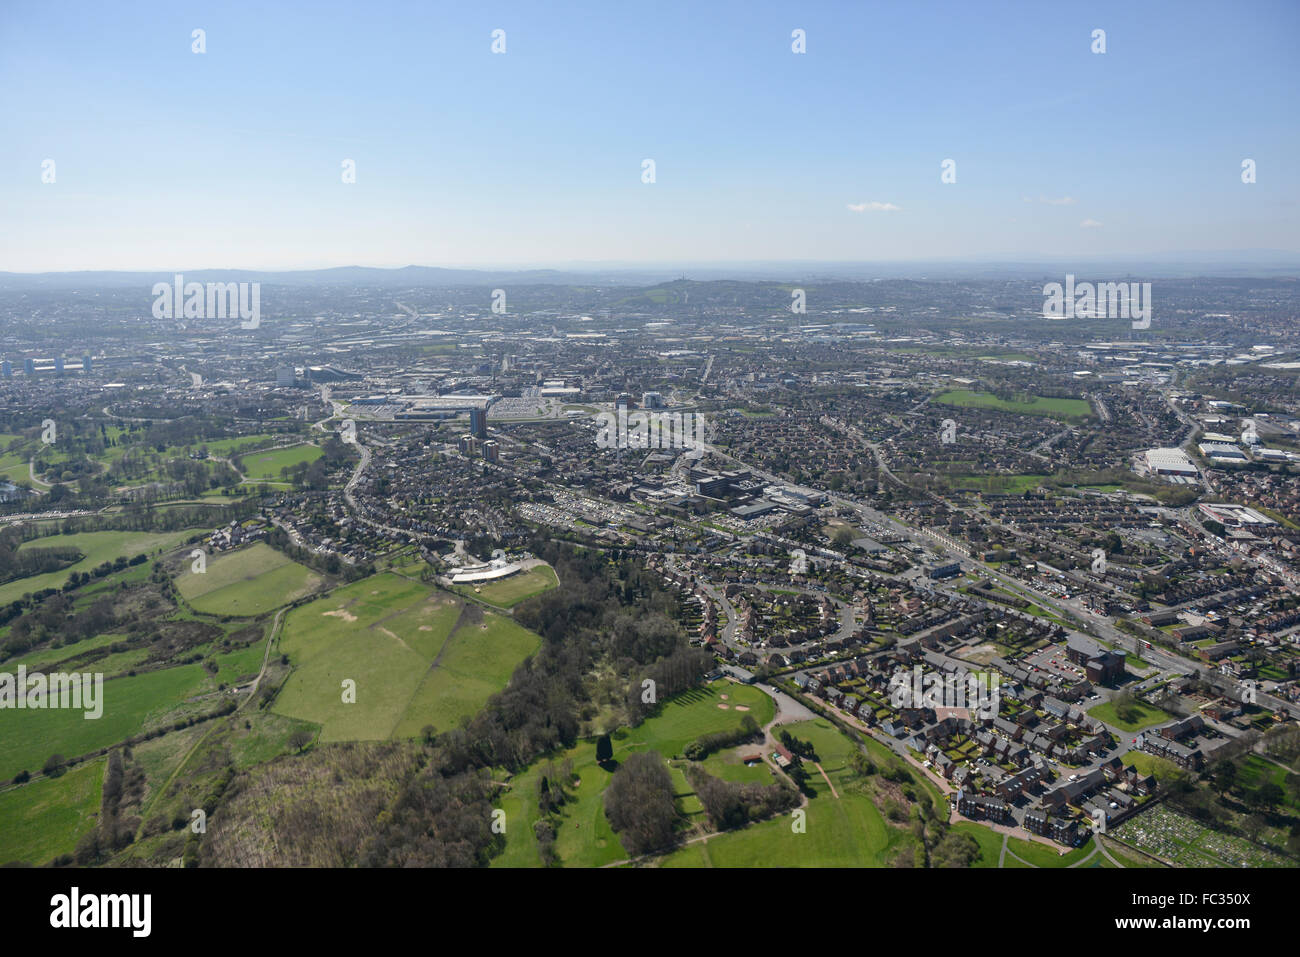 General aerial views of the Black Country town of West Bromwich - Stock Image